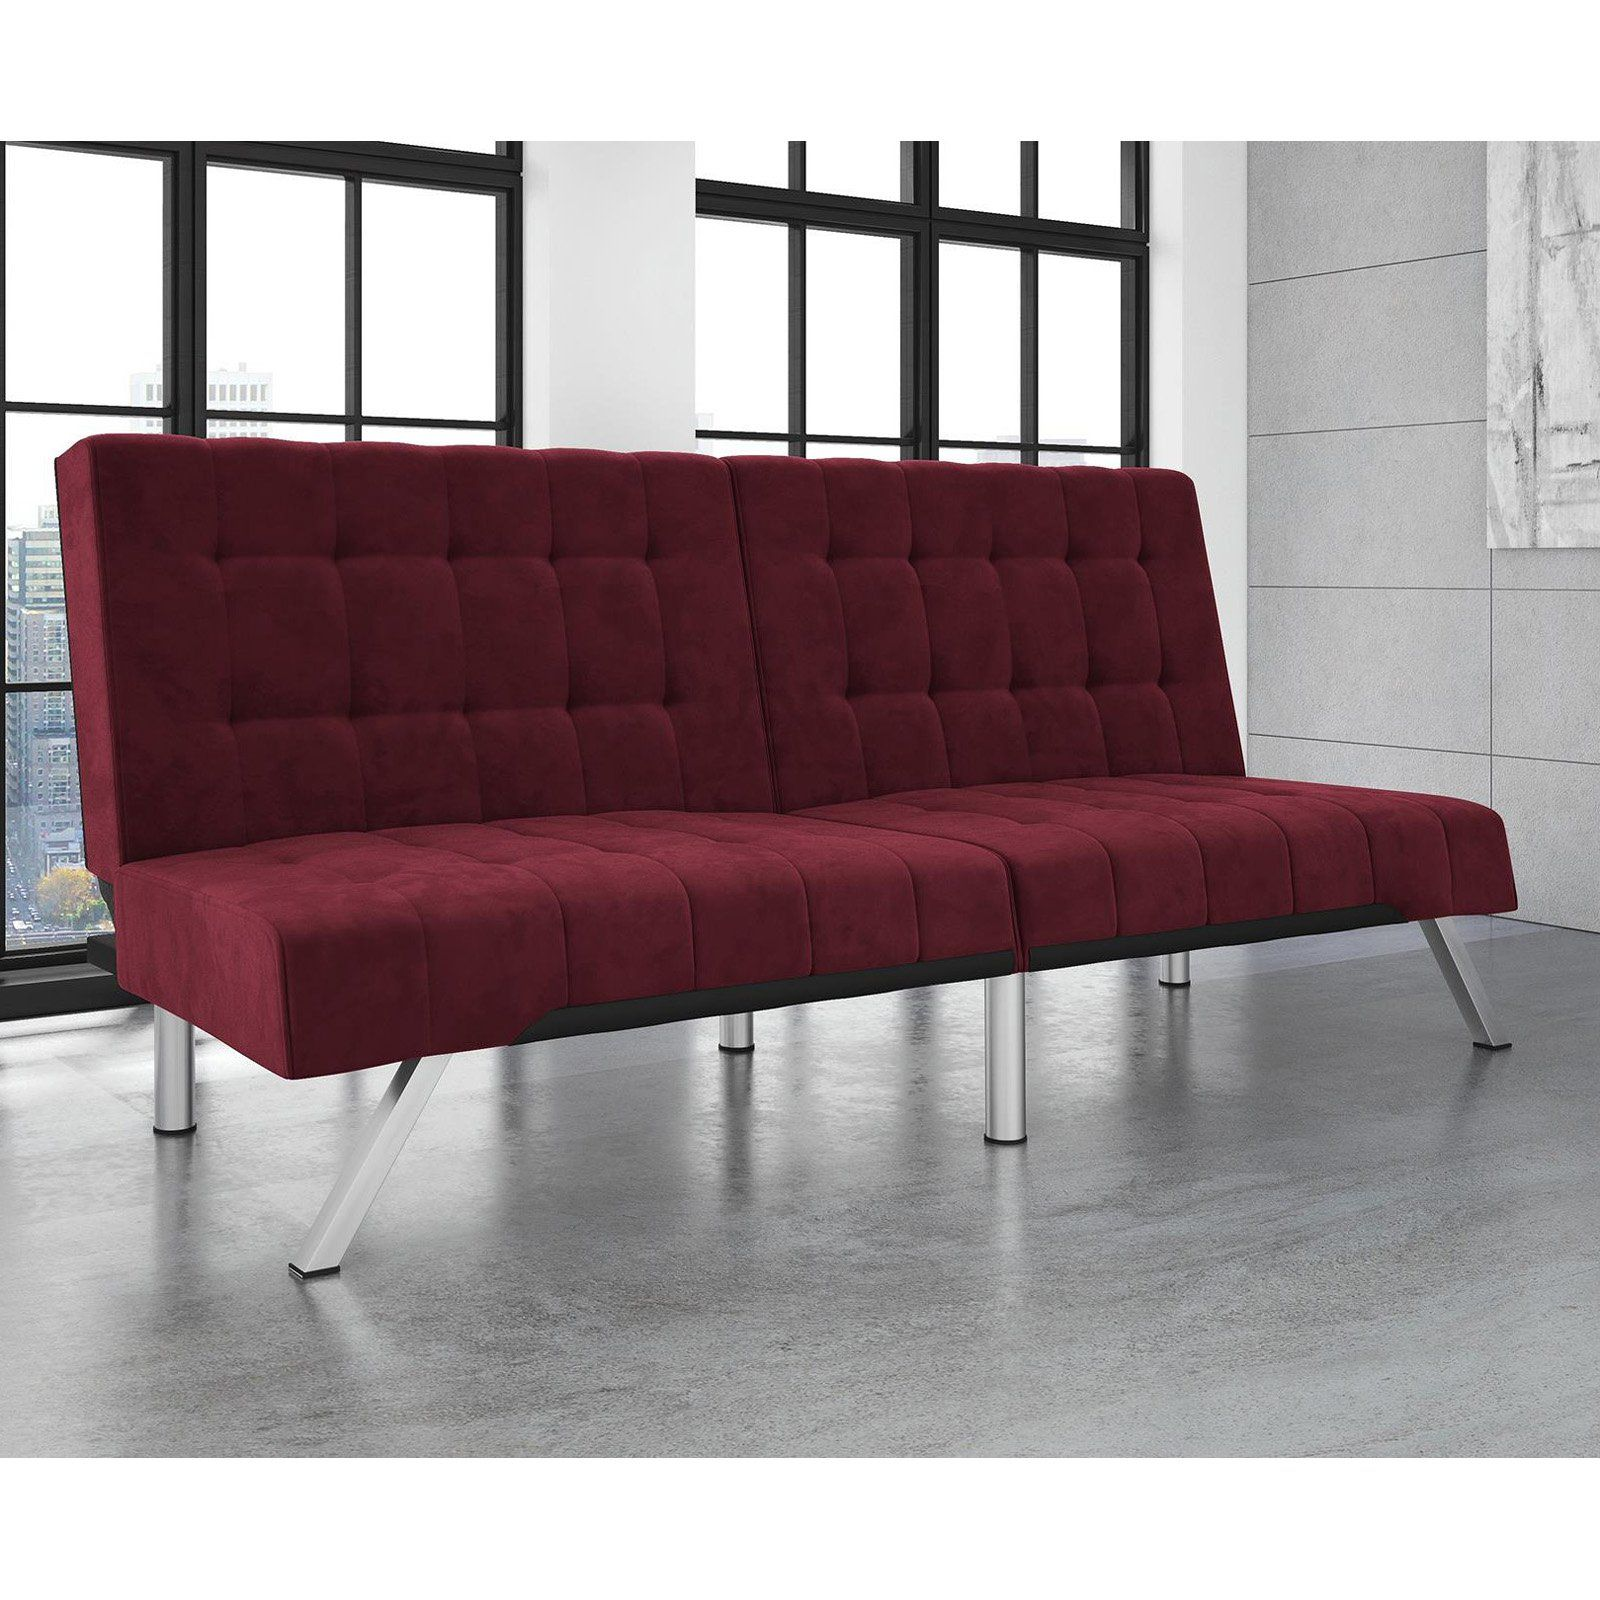 Amazing Dhp Emily Futon Burgundy Velvet Burgundy In 2019 Products Pabps2019 Chair Design Images Pabps2019Com